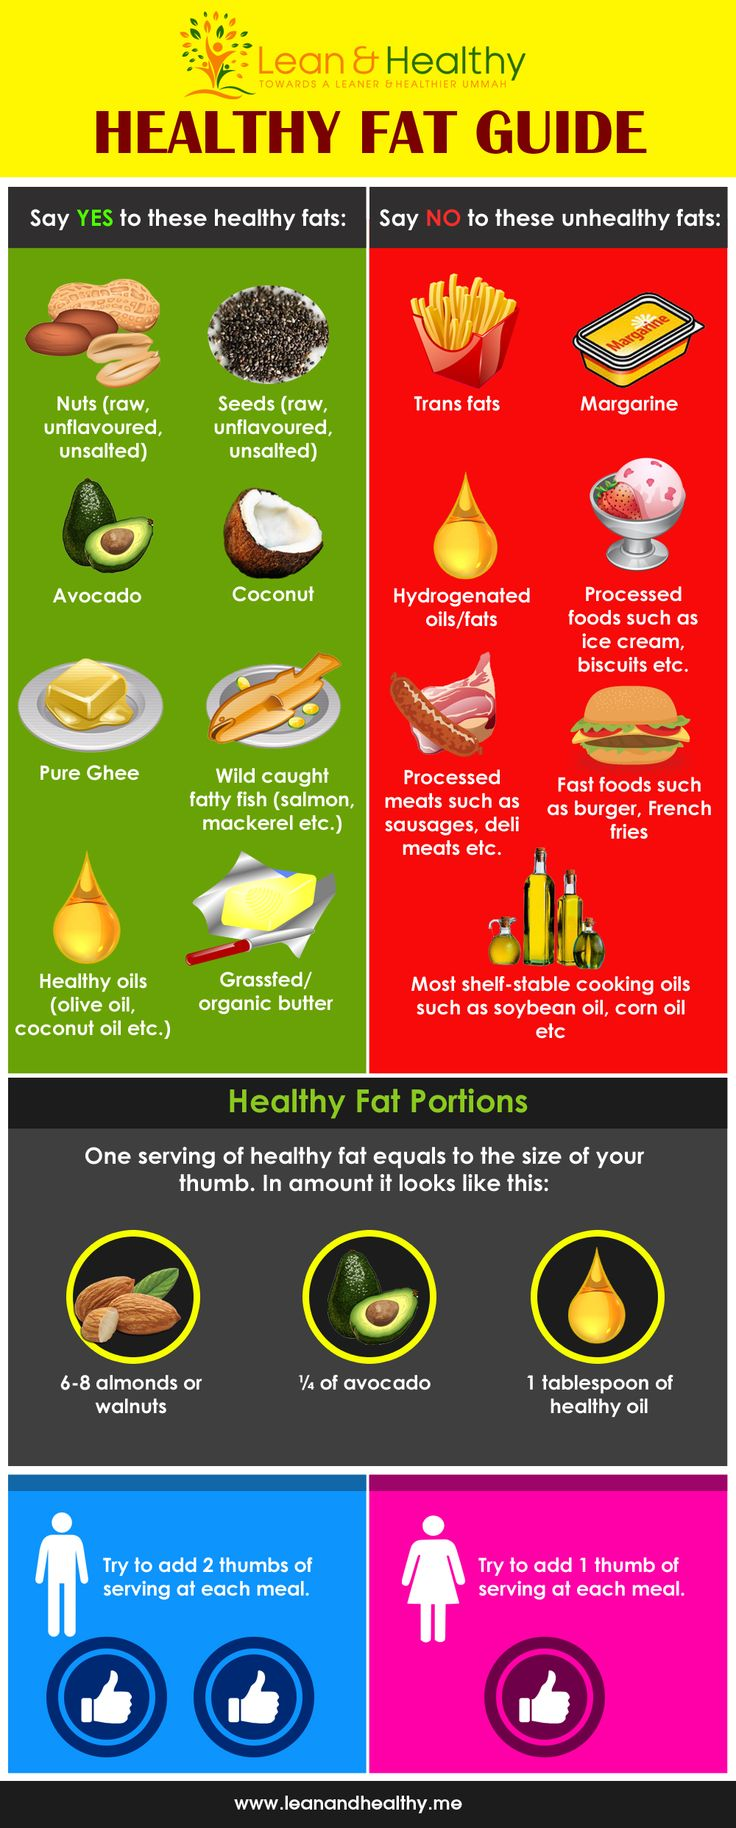 #healthy fat guide #leanAndHealthy